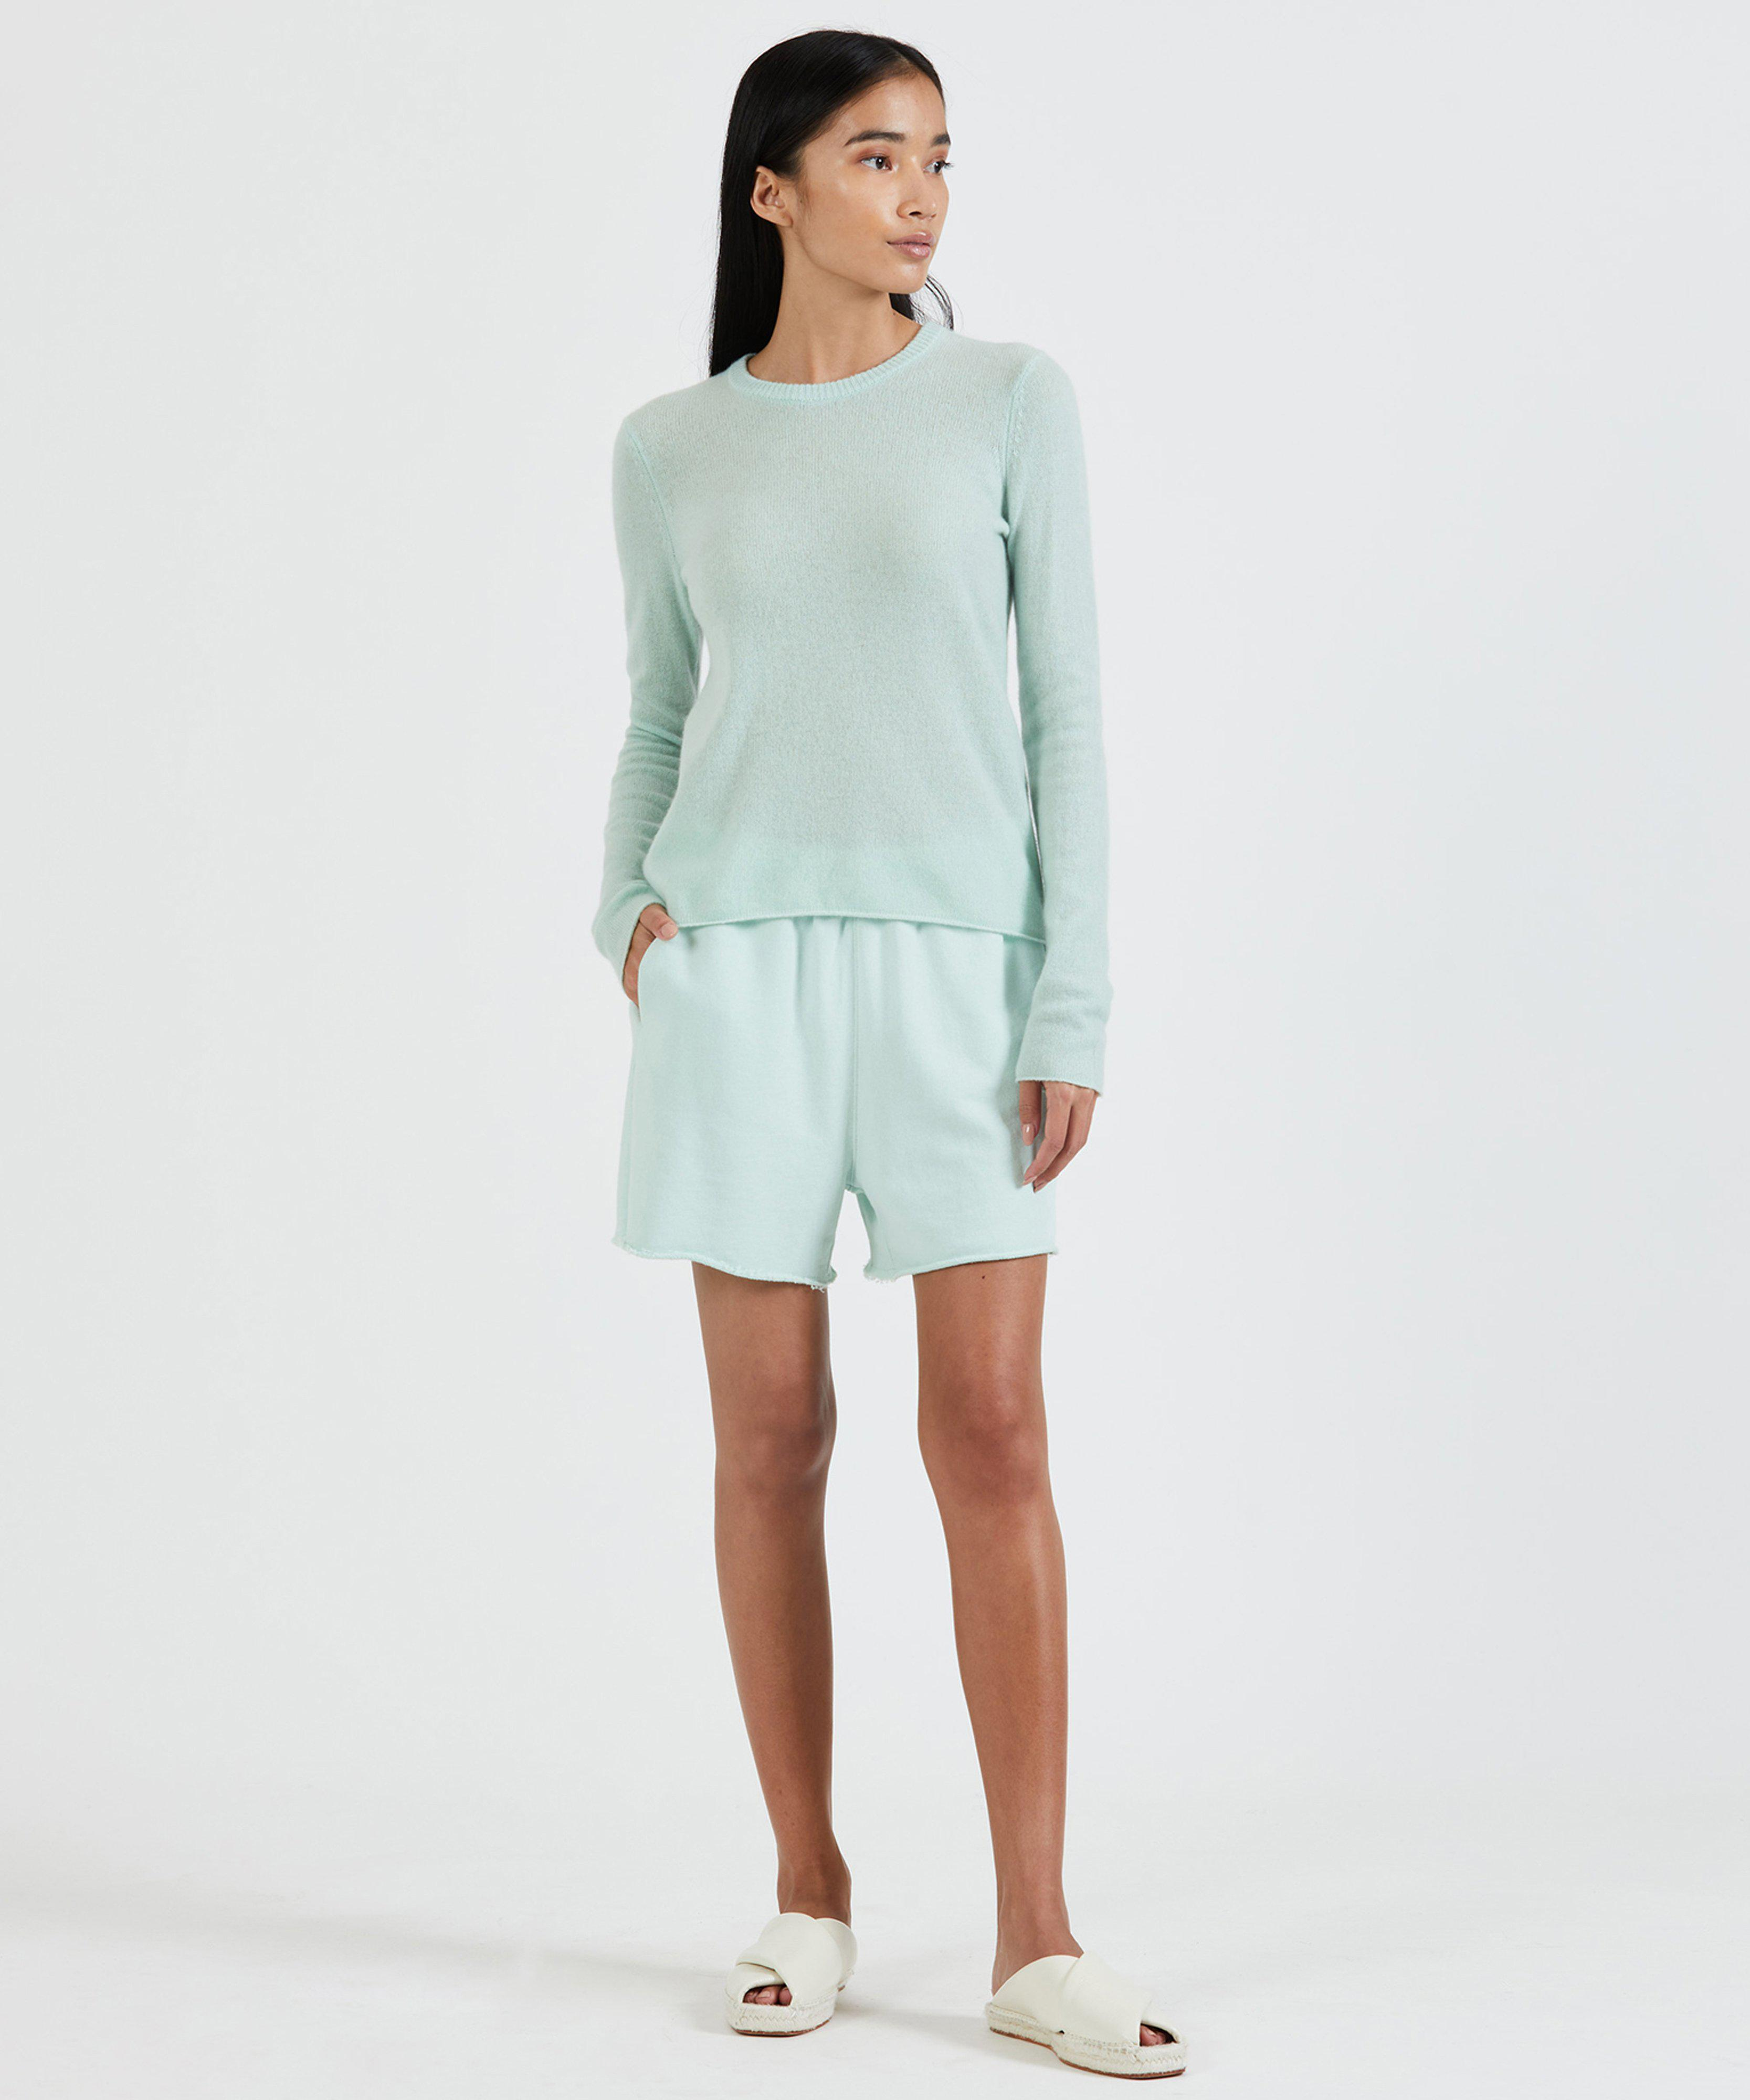 French Terry Pull-On Short - Mint 3